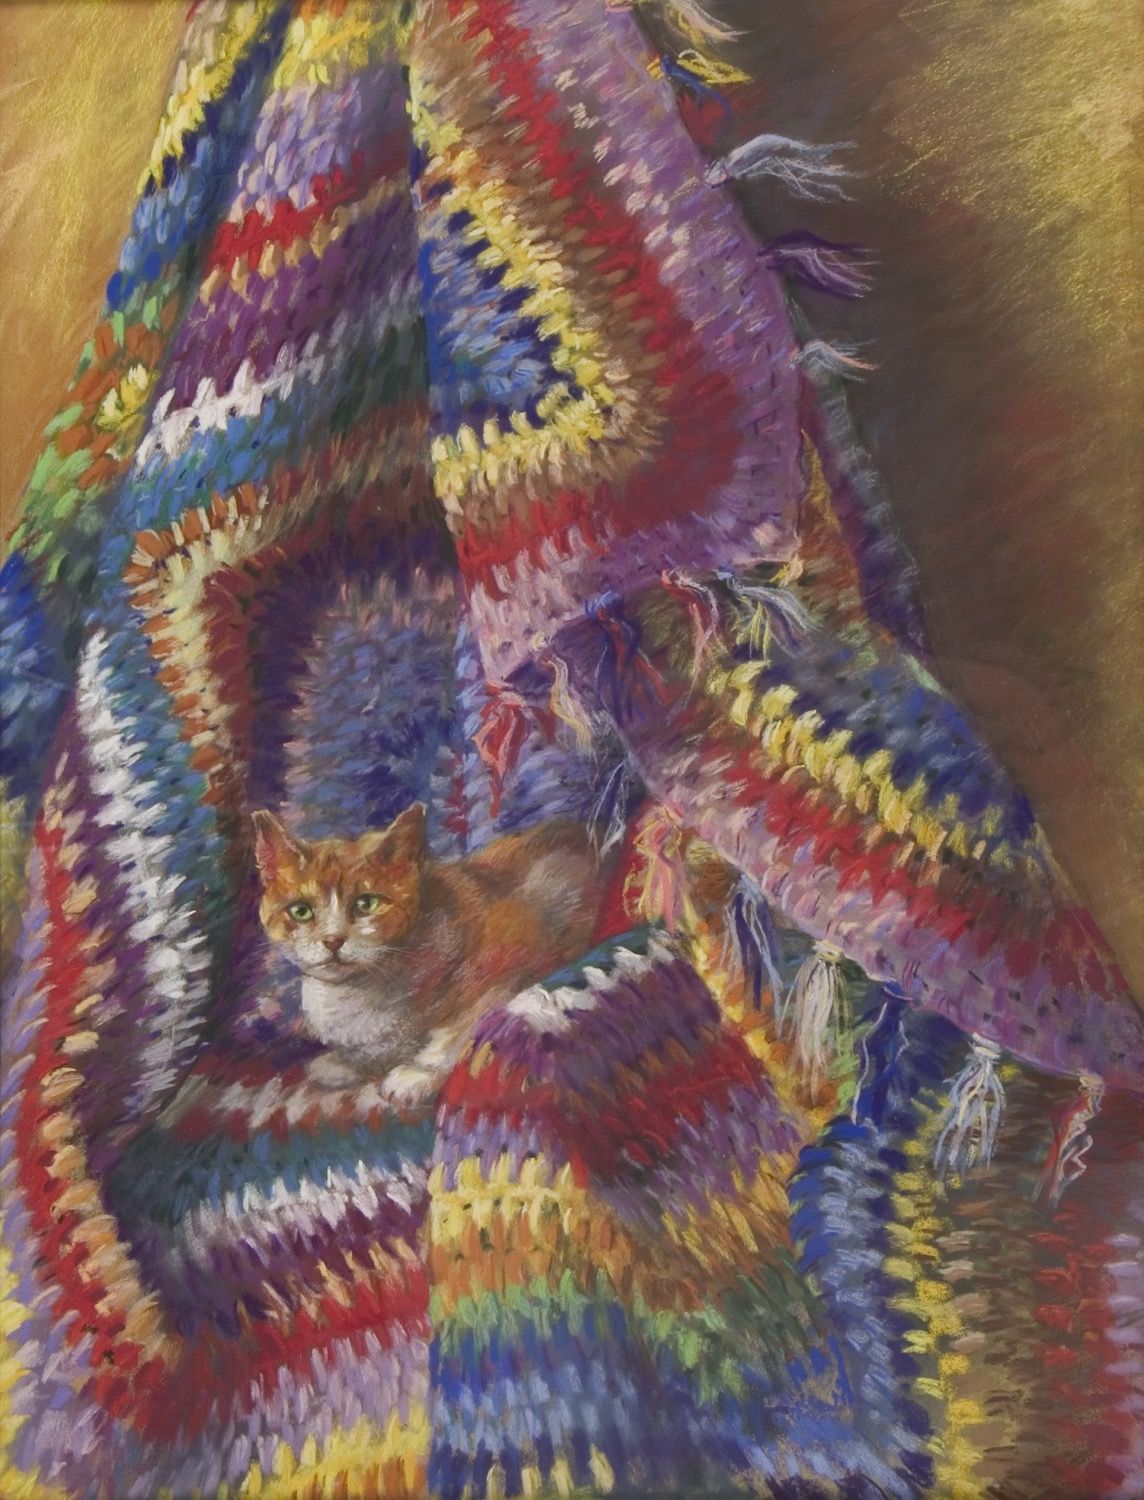 Kitten in Shawl